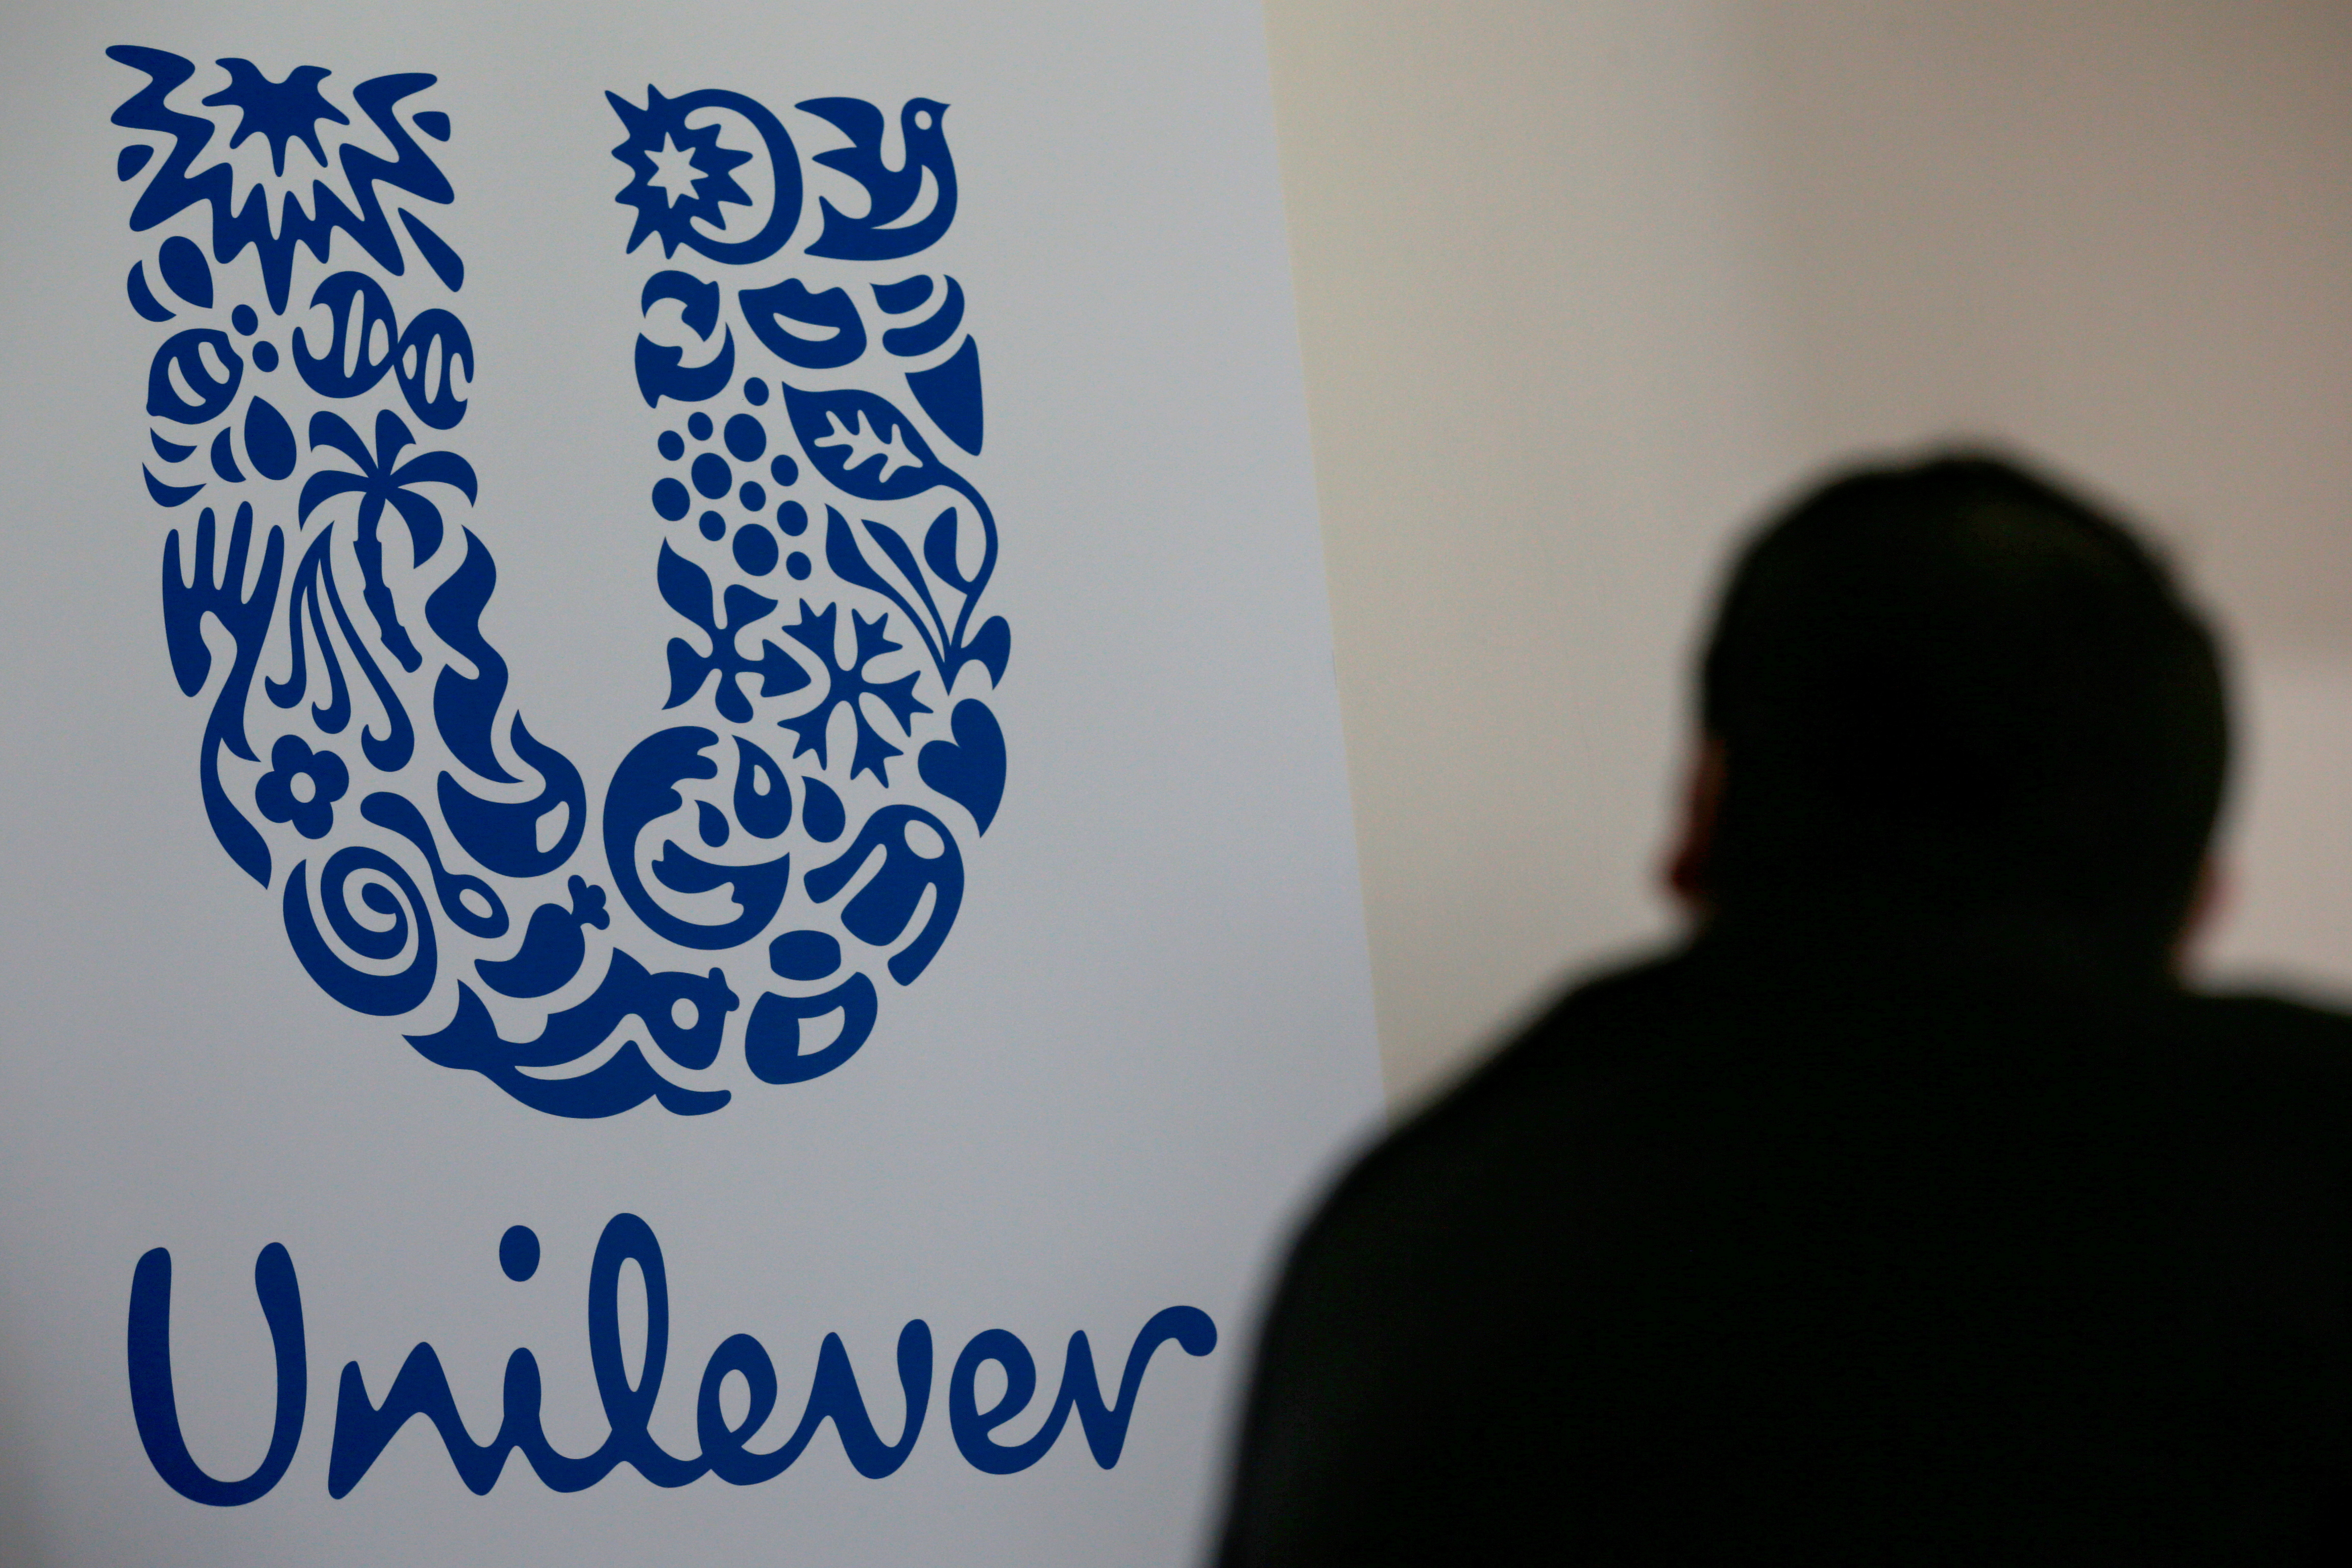 The logo of the Unilever group is seen at the Miko factory in Saint-Dizier, France, May 4, 2016. REUTERS/Philippe Wojazer/File Photo/File Photo